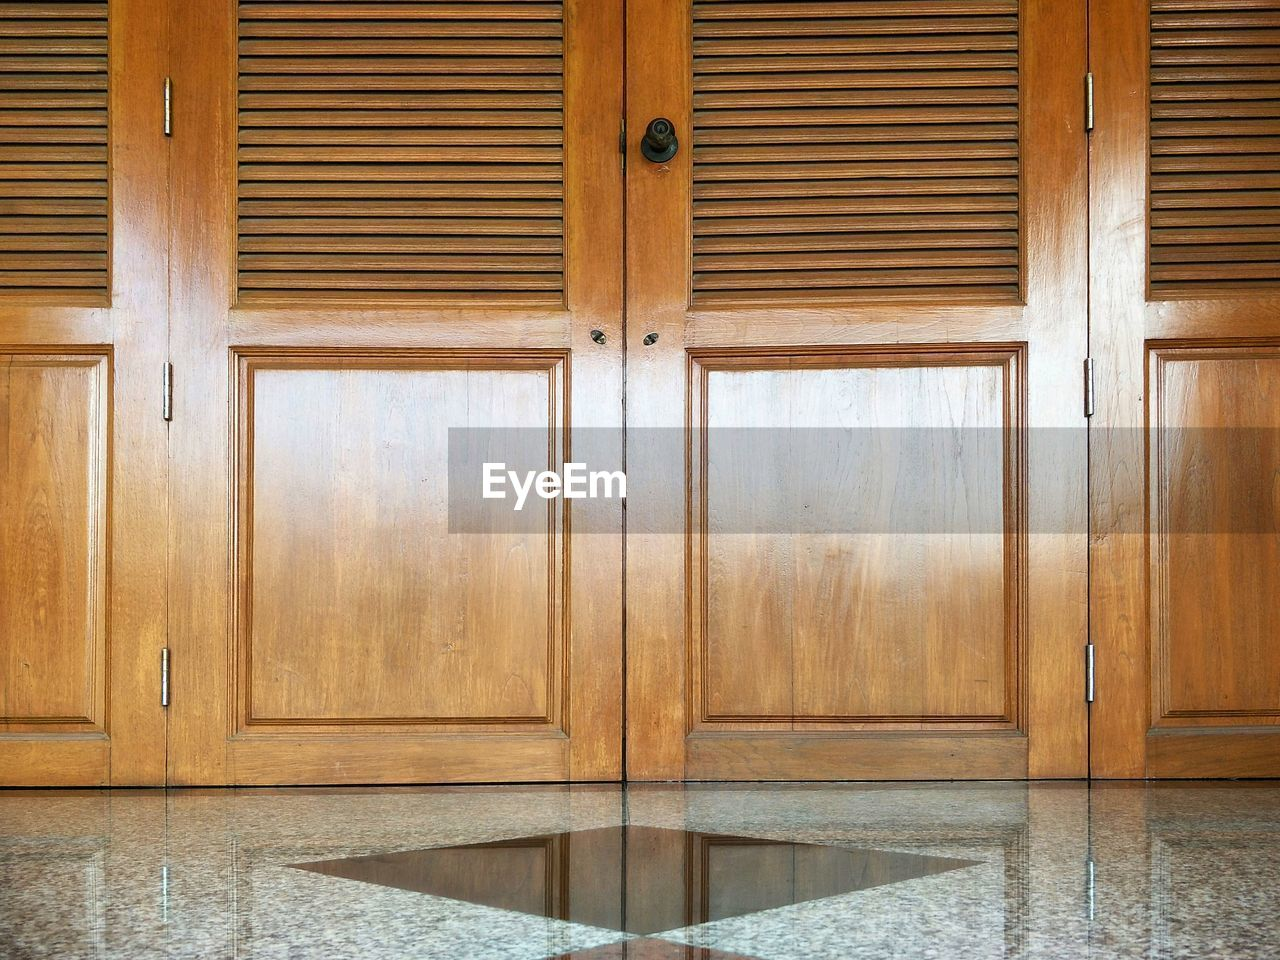 wood - material, no people, indoors, pattern, brown, architecture, day, full frame, built structure, wood, door, home interior, entrance, closed, wall - building feature, house, flooring, safety, building